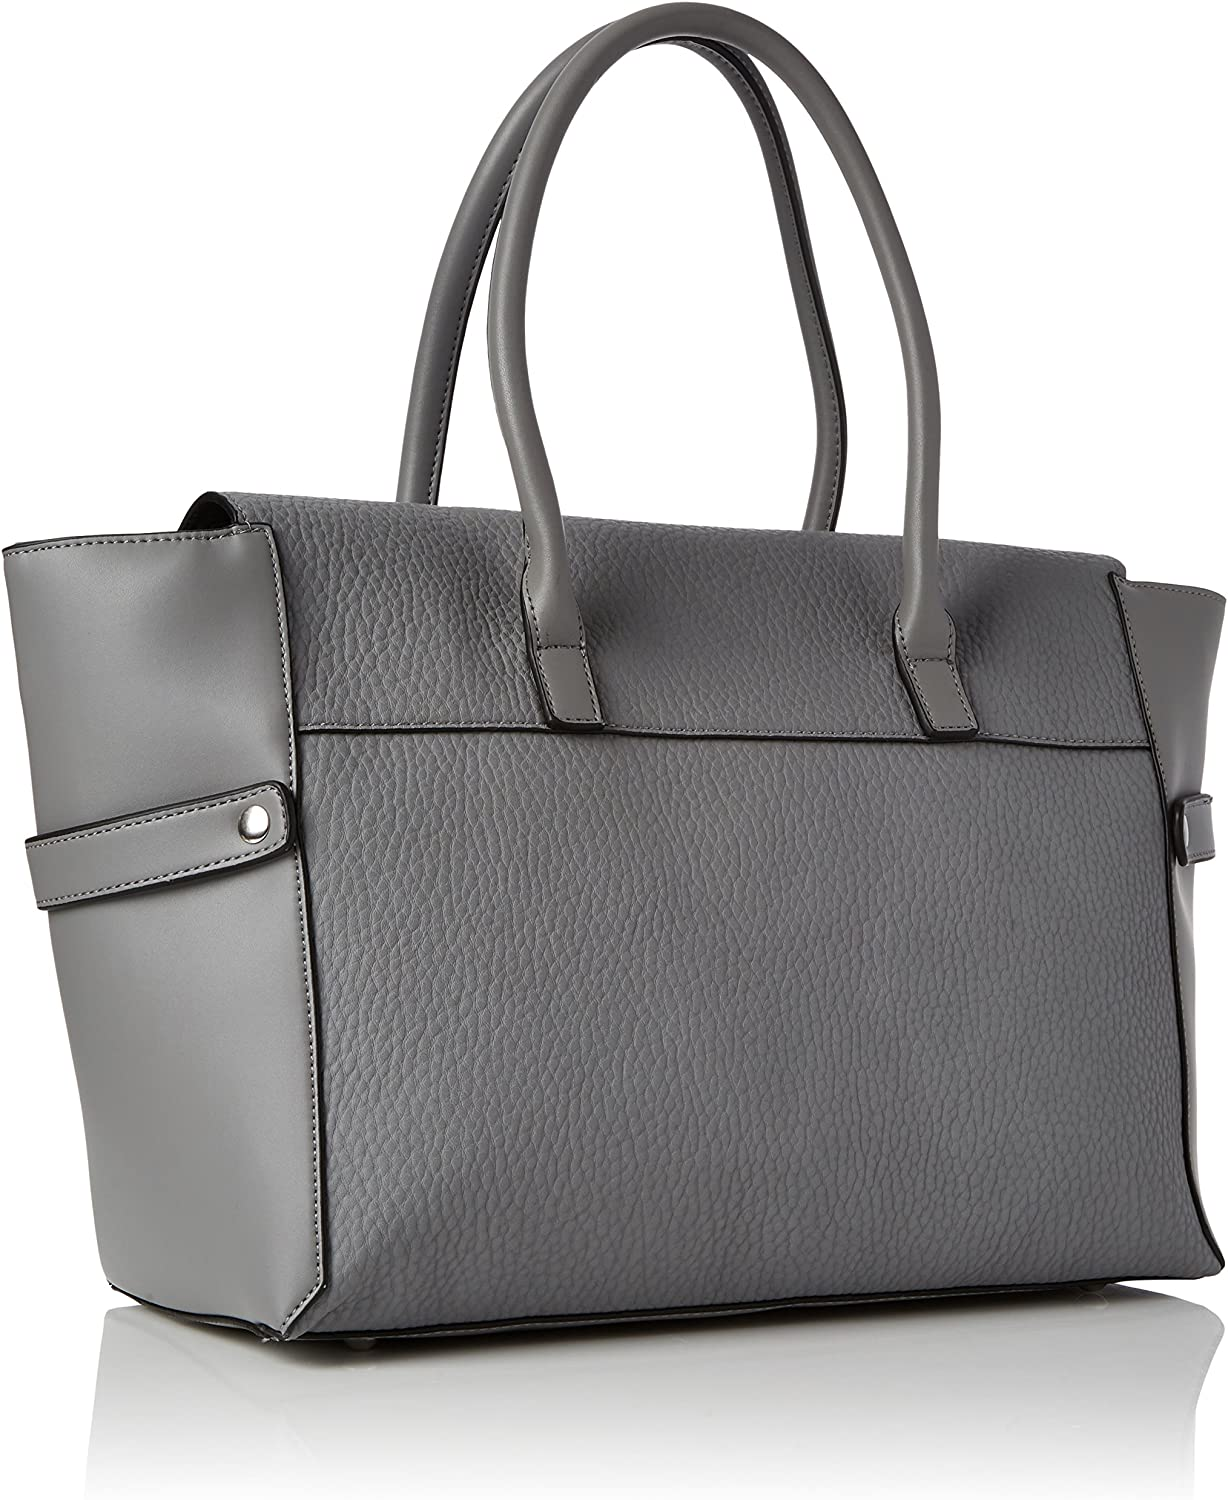 Fiorelli Barbican Raven Mix Large Tote Bag-Black//White//Brown-New in Packaging